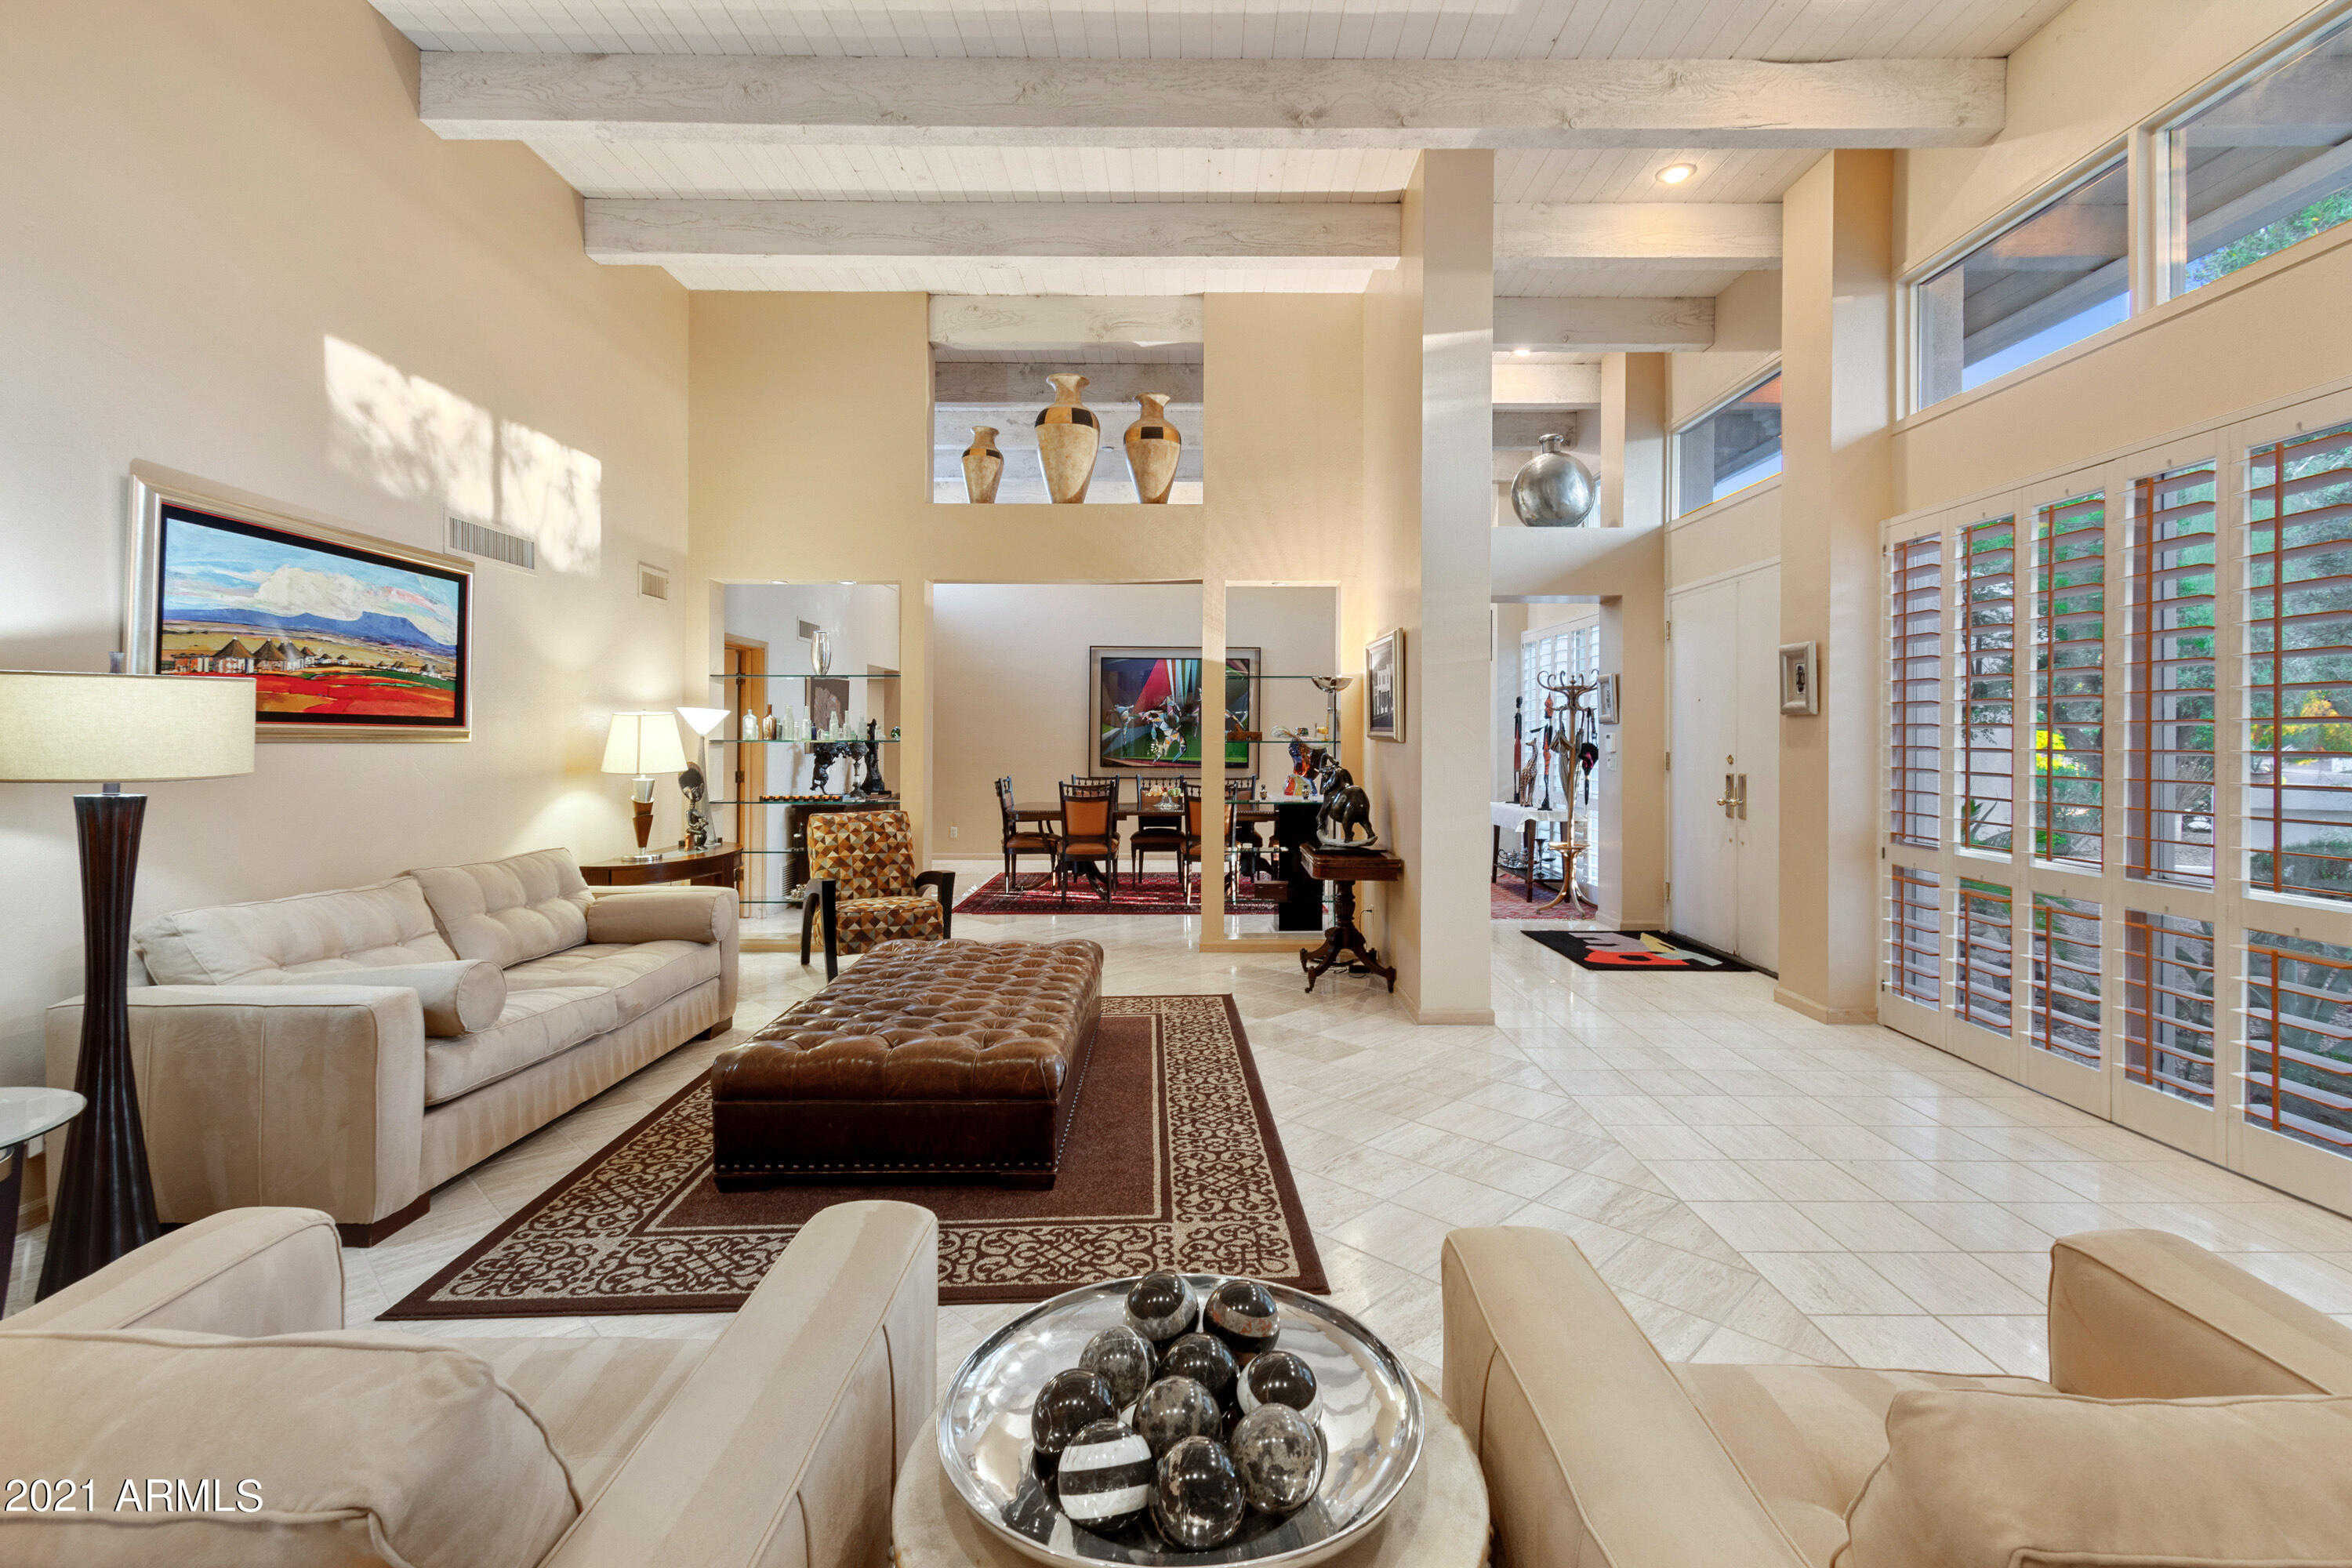 $2,000,000 - 5Br/5Ba - Home for Sale in Palo Olivo Estates 2, Paradise Valley